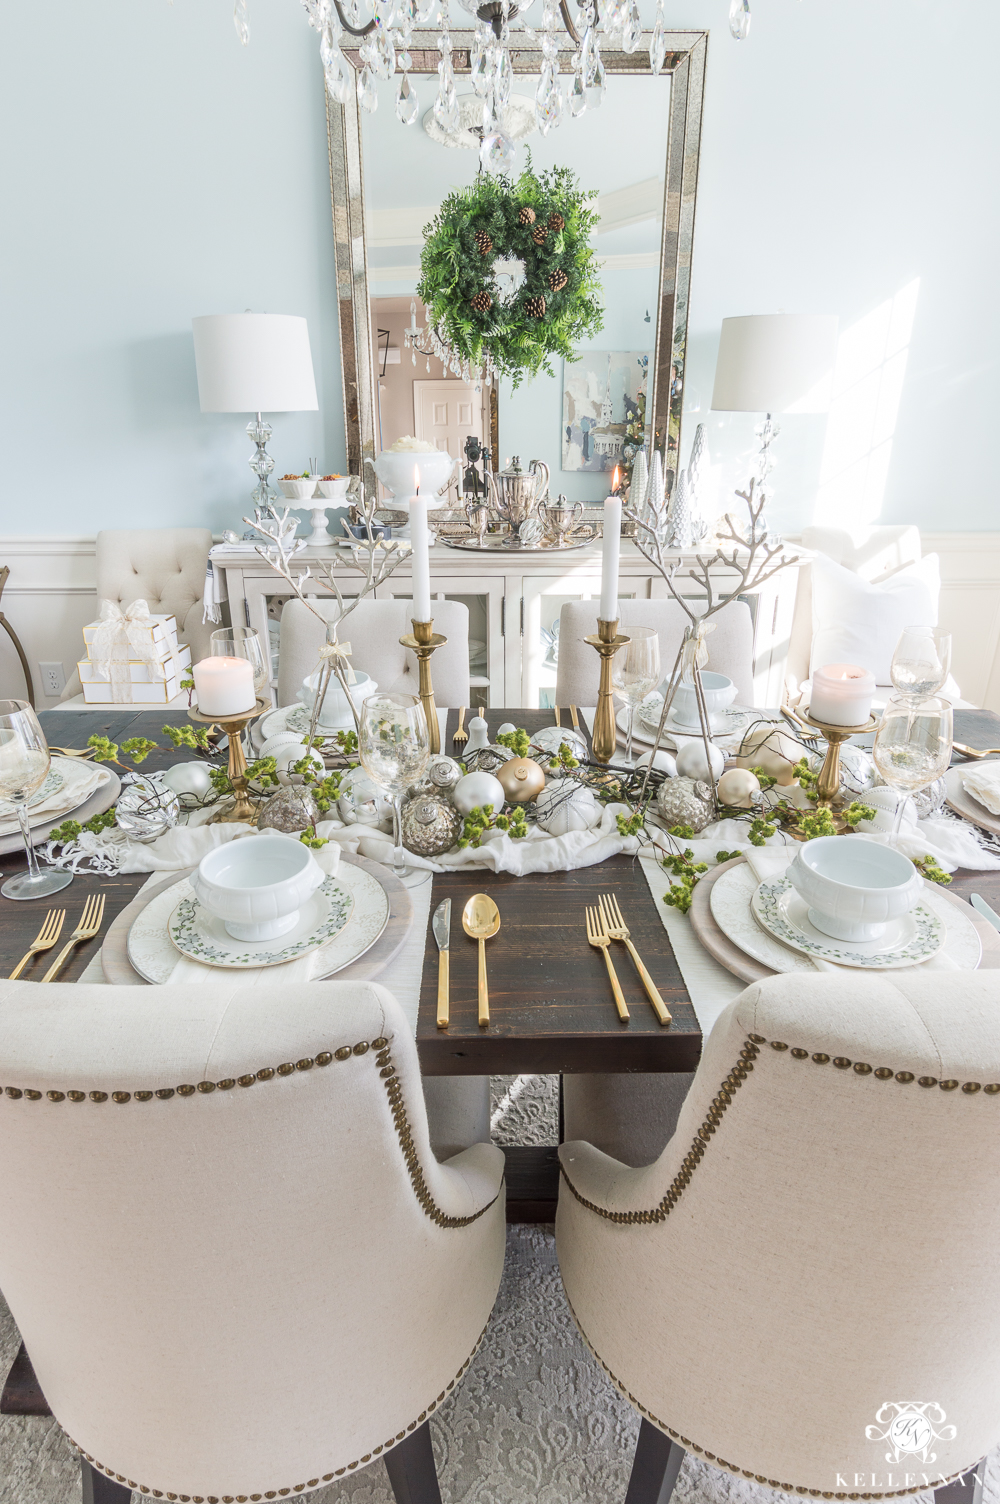 Christmas dinner table styling ideas with moss and reindeer